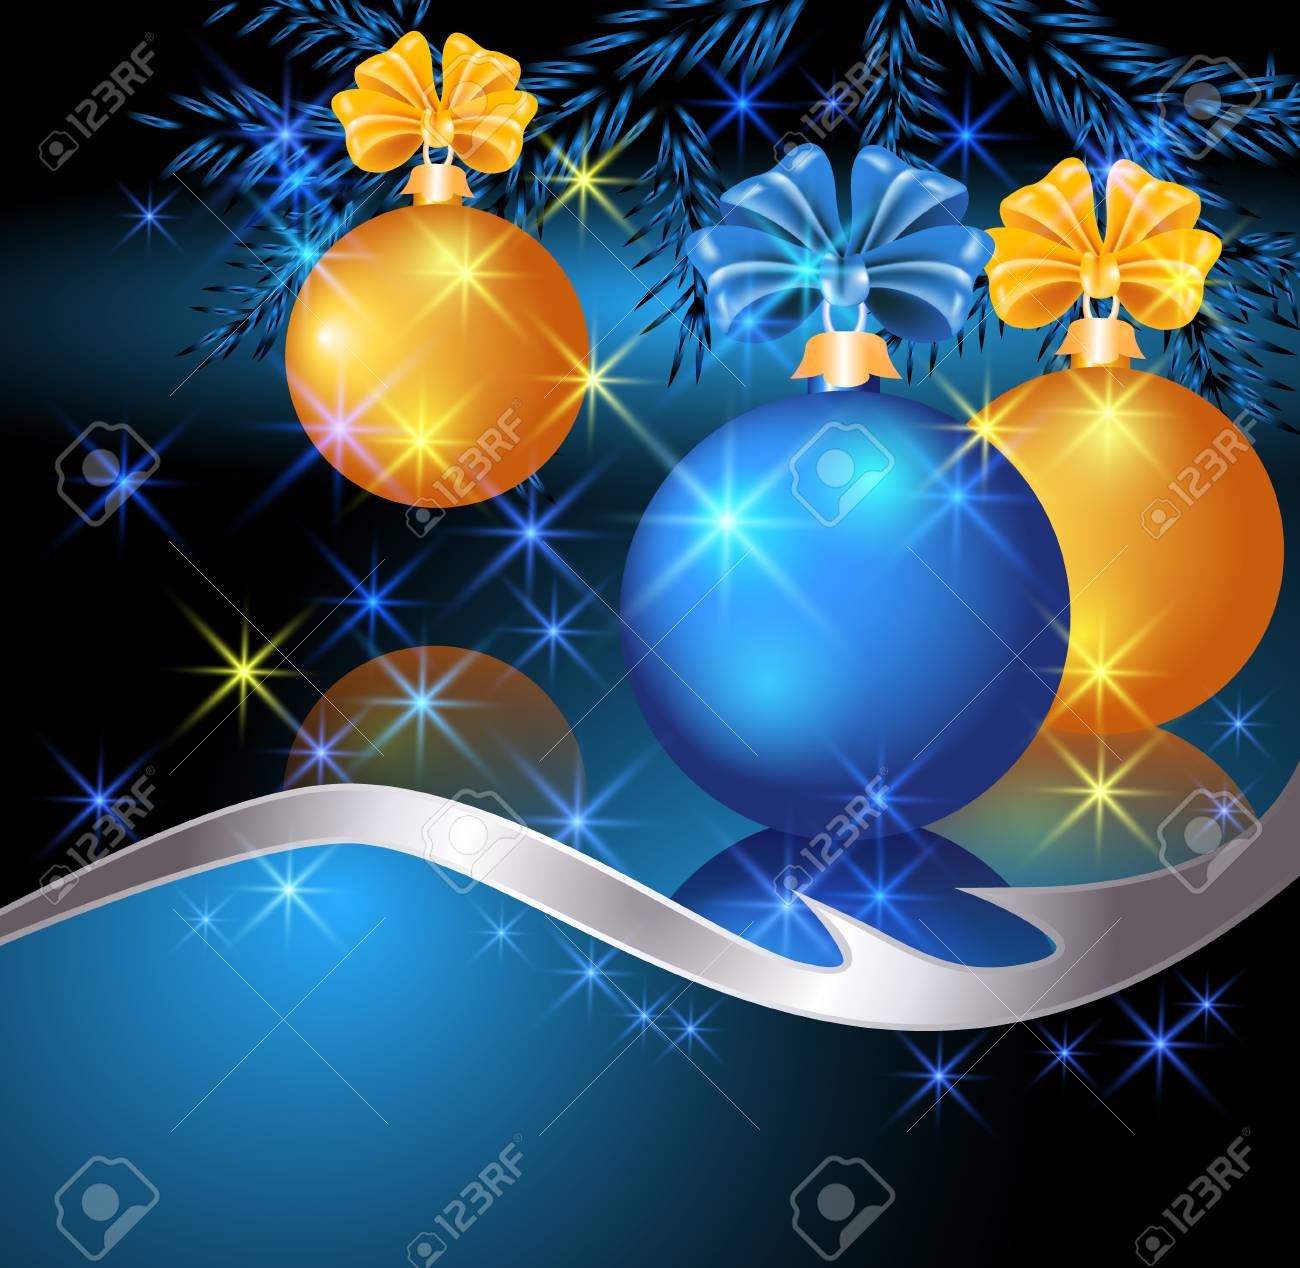 Christmas card with blue and yellow balls Stock Vector - 16519032